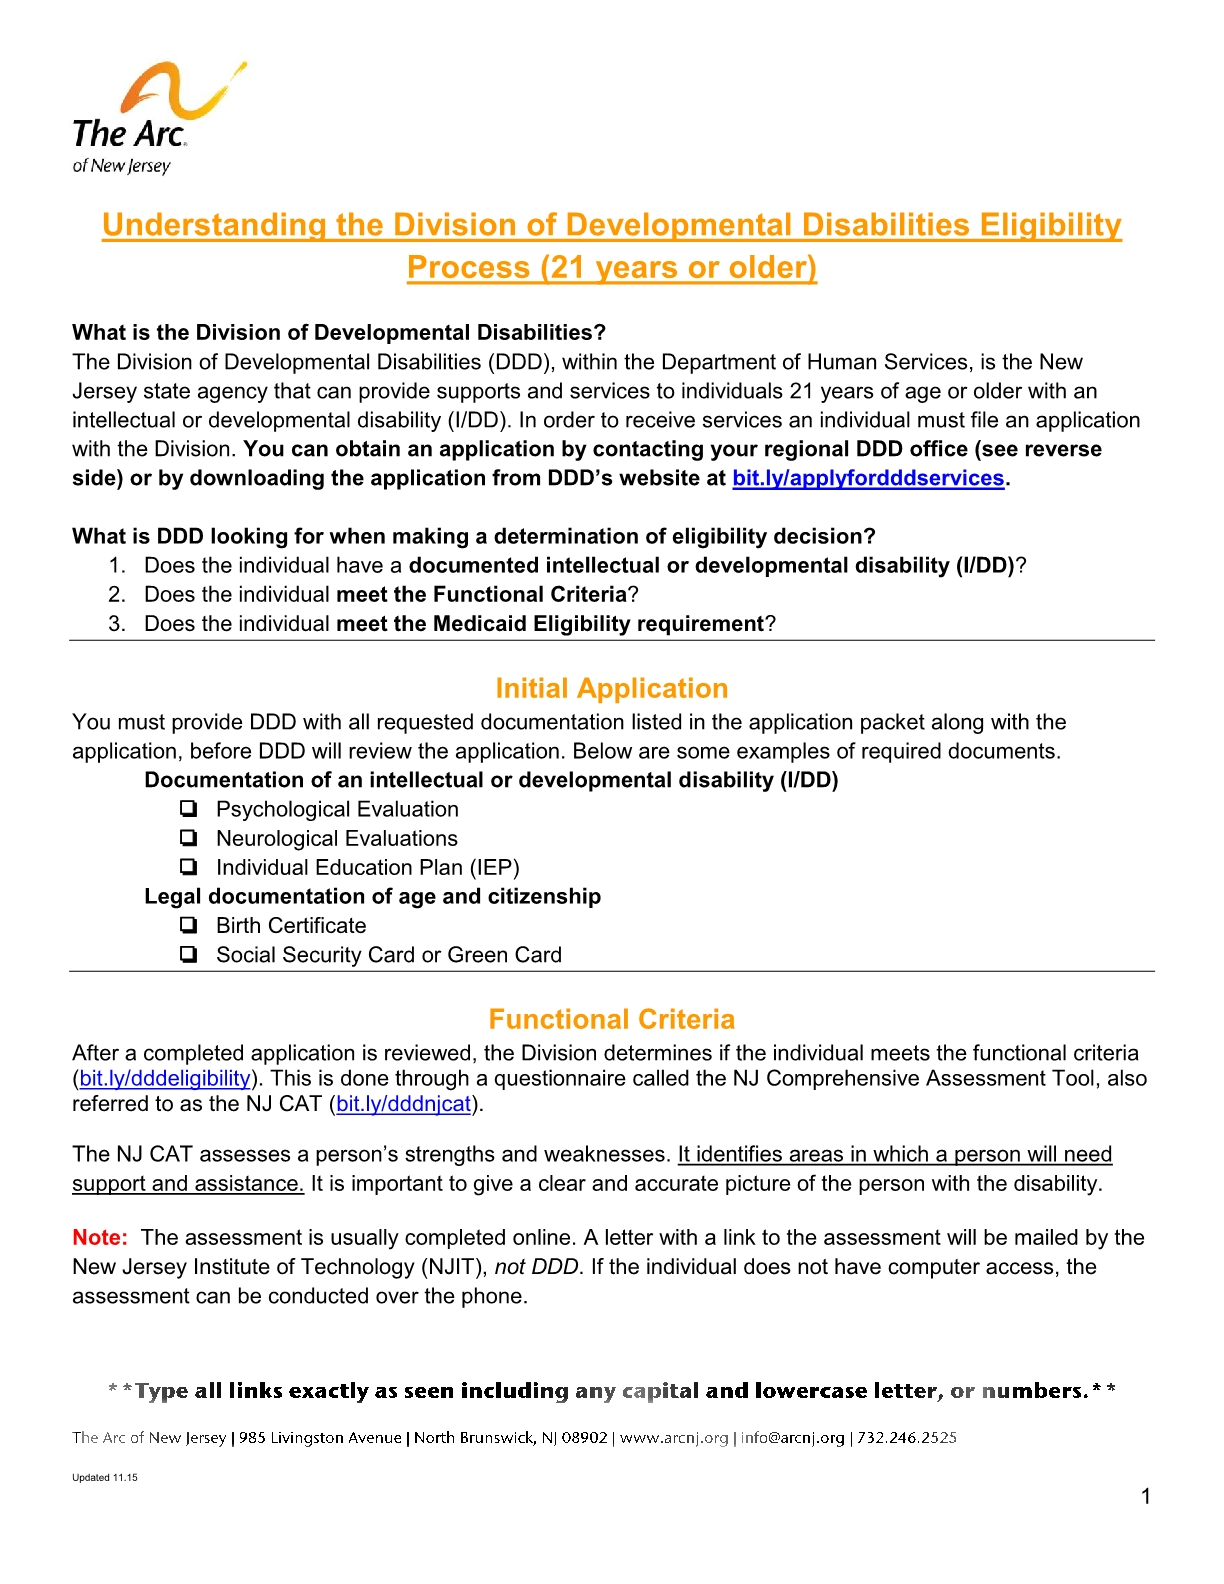 the arc of new jersey family institute resources fact sheets english understanding ddd s determination of eligibility process